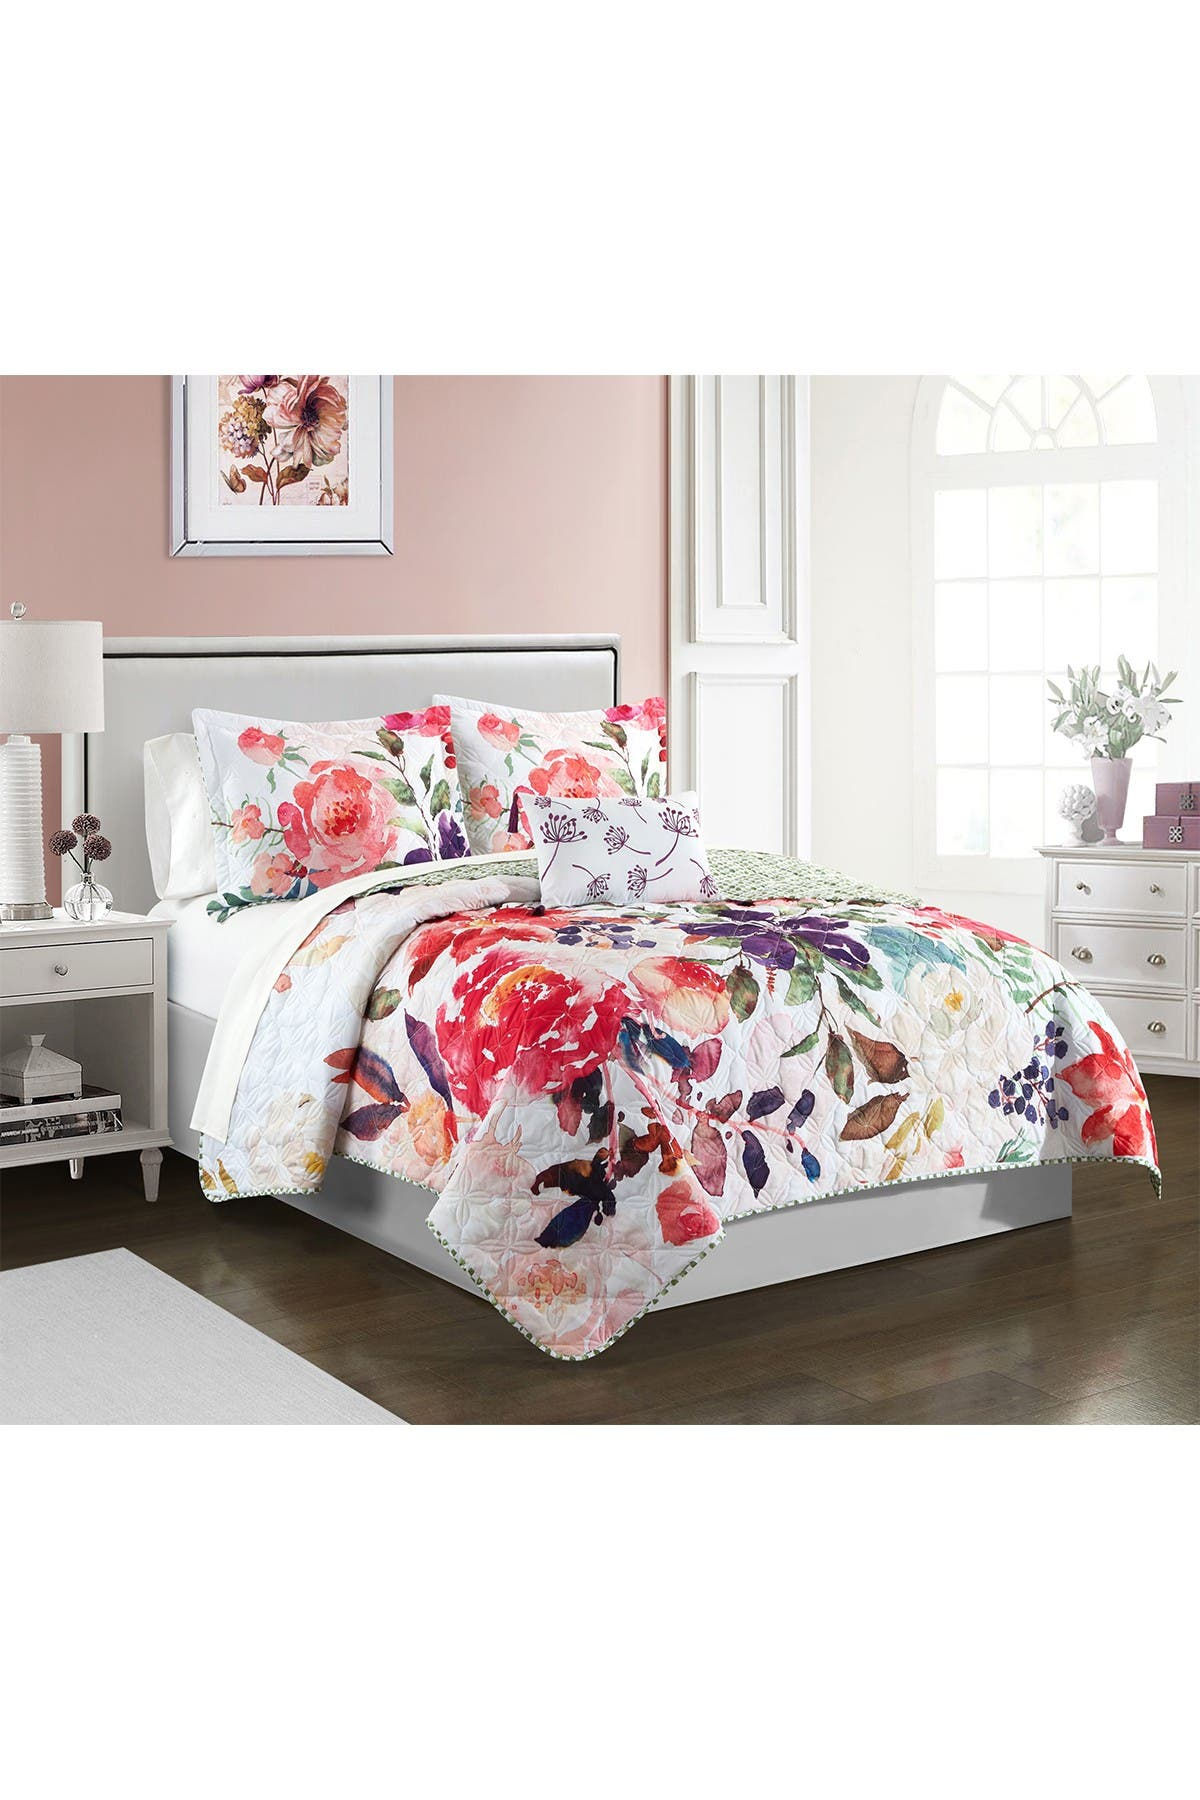 Image of Chic Home Bedding Ovilos Watercolor Floral Print With Geometric Leaf Pattern On The Reverse King, Quilt Set, Multi Color, 4-Piece